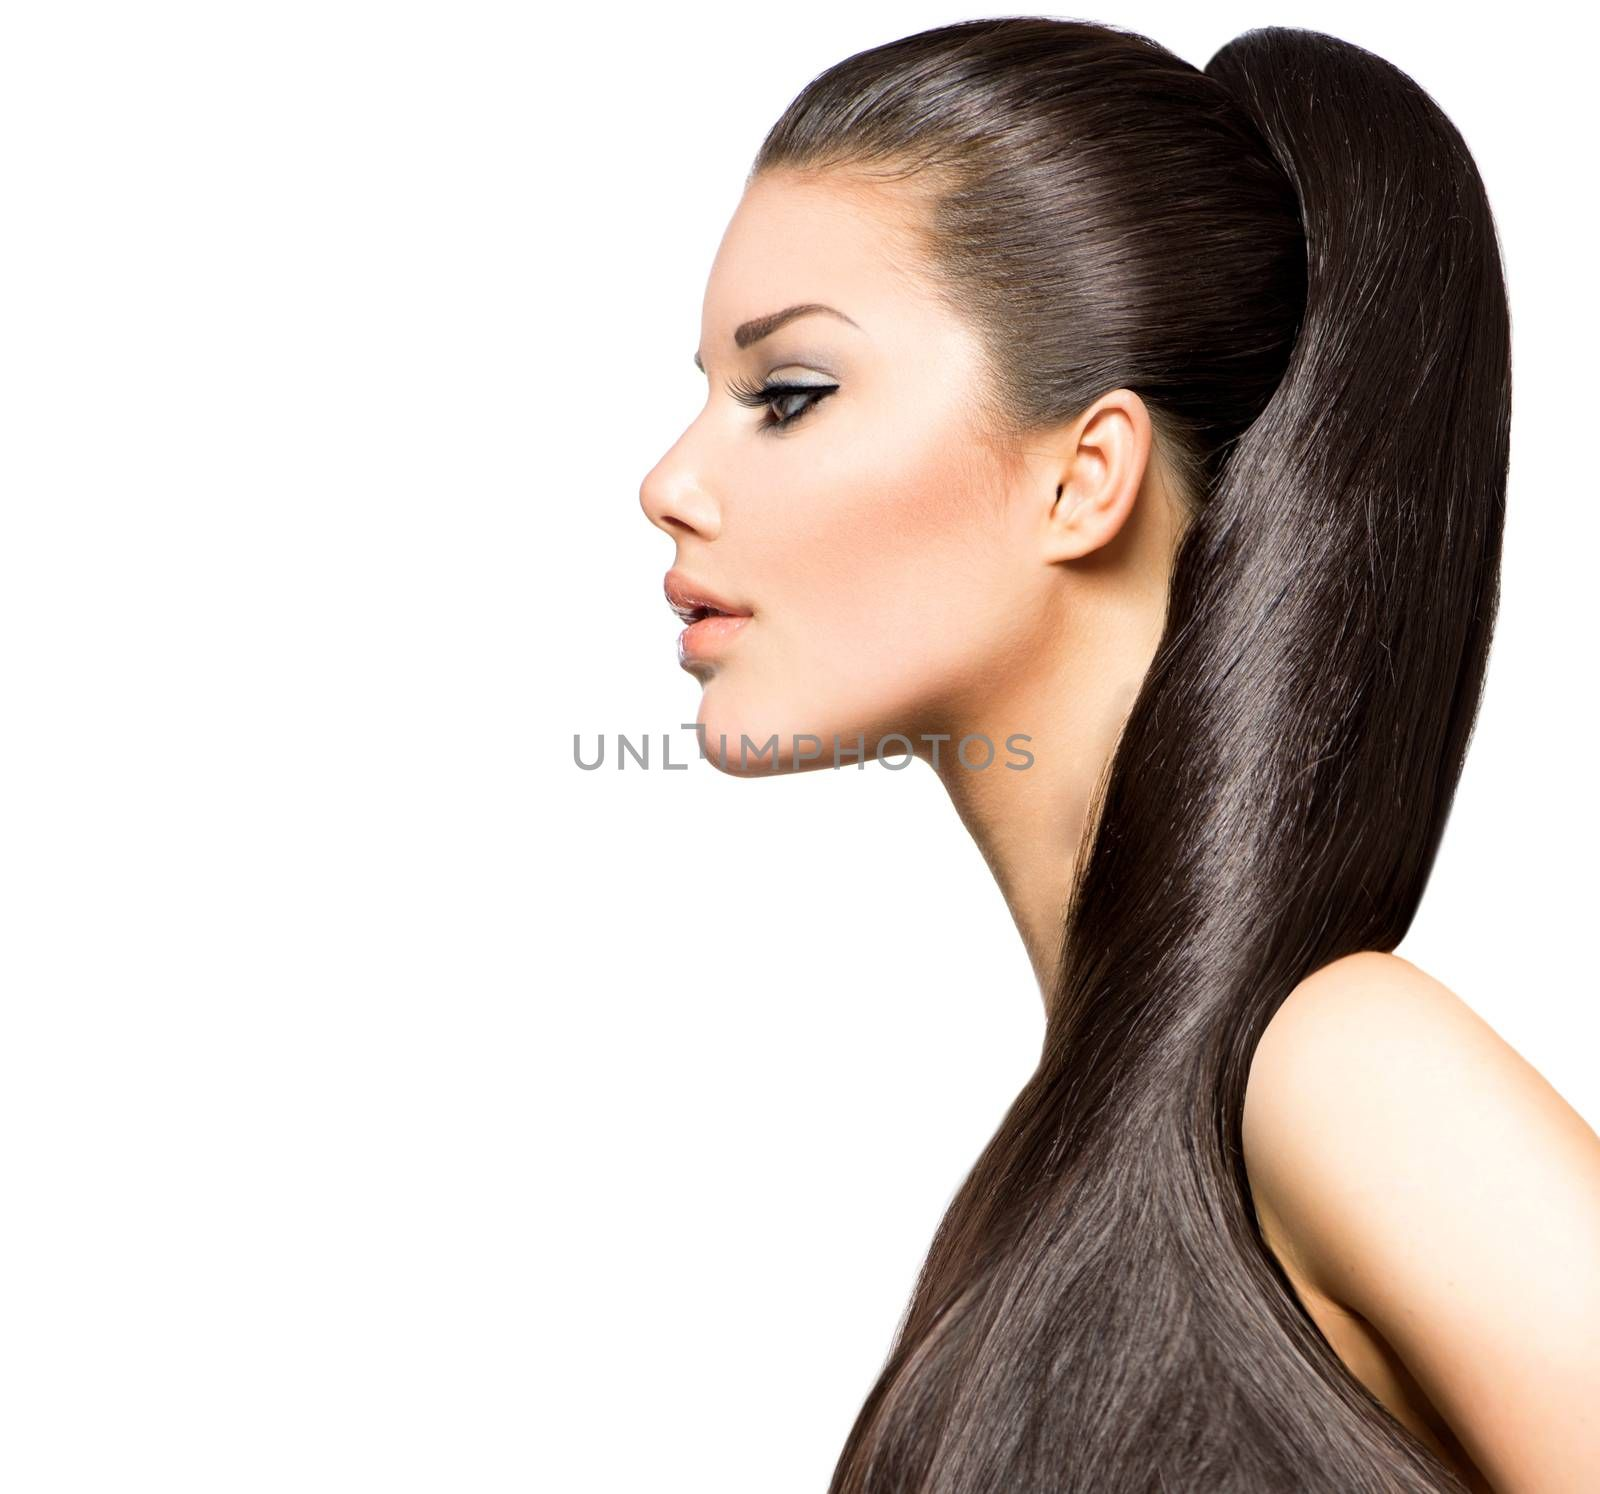 Ponytail Hairstyle. Beauty Brunette Fashion Model Girl